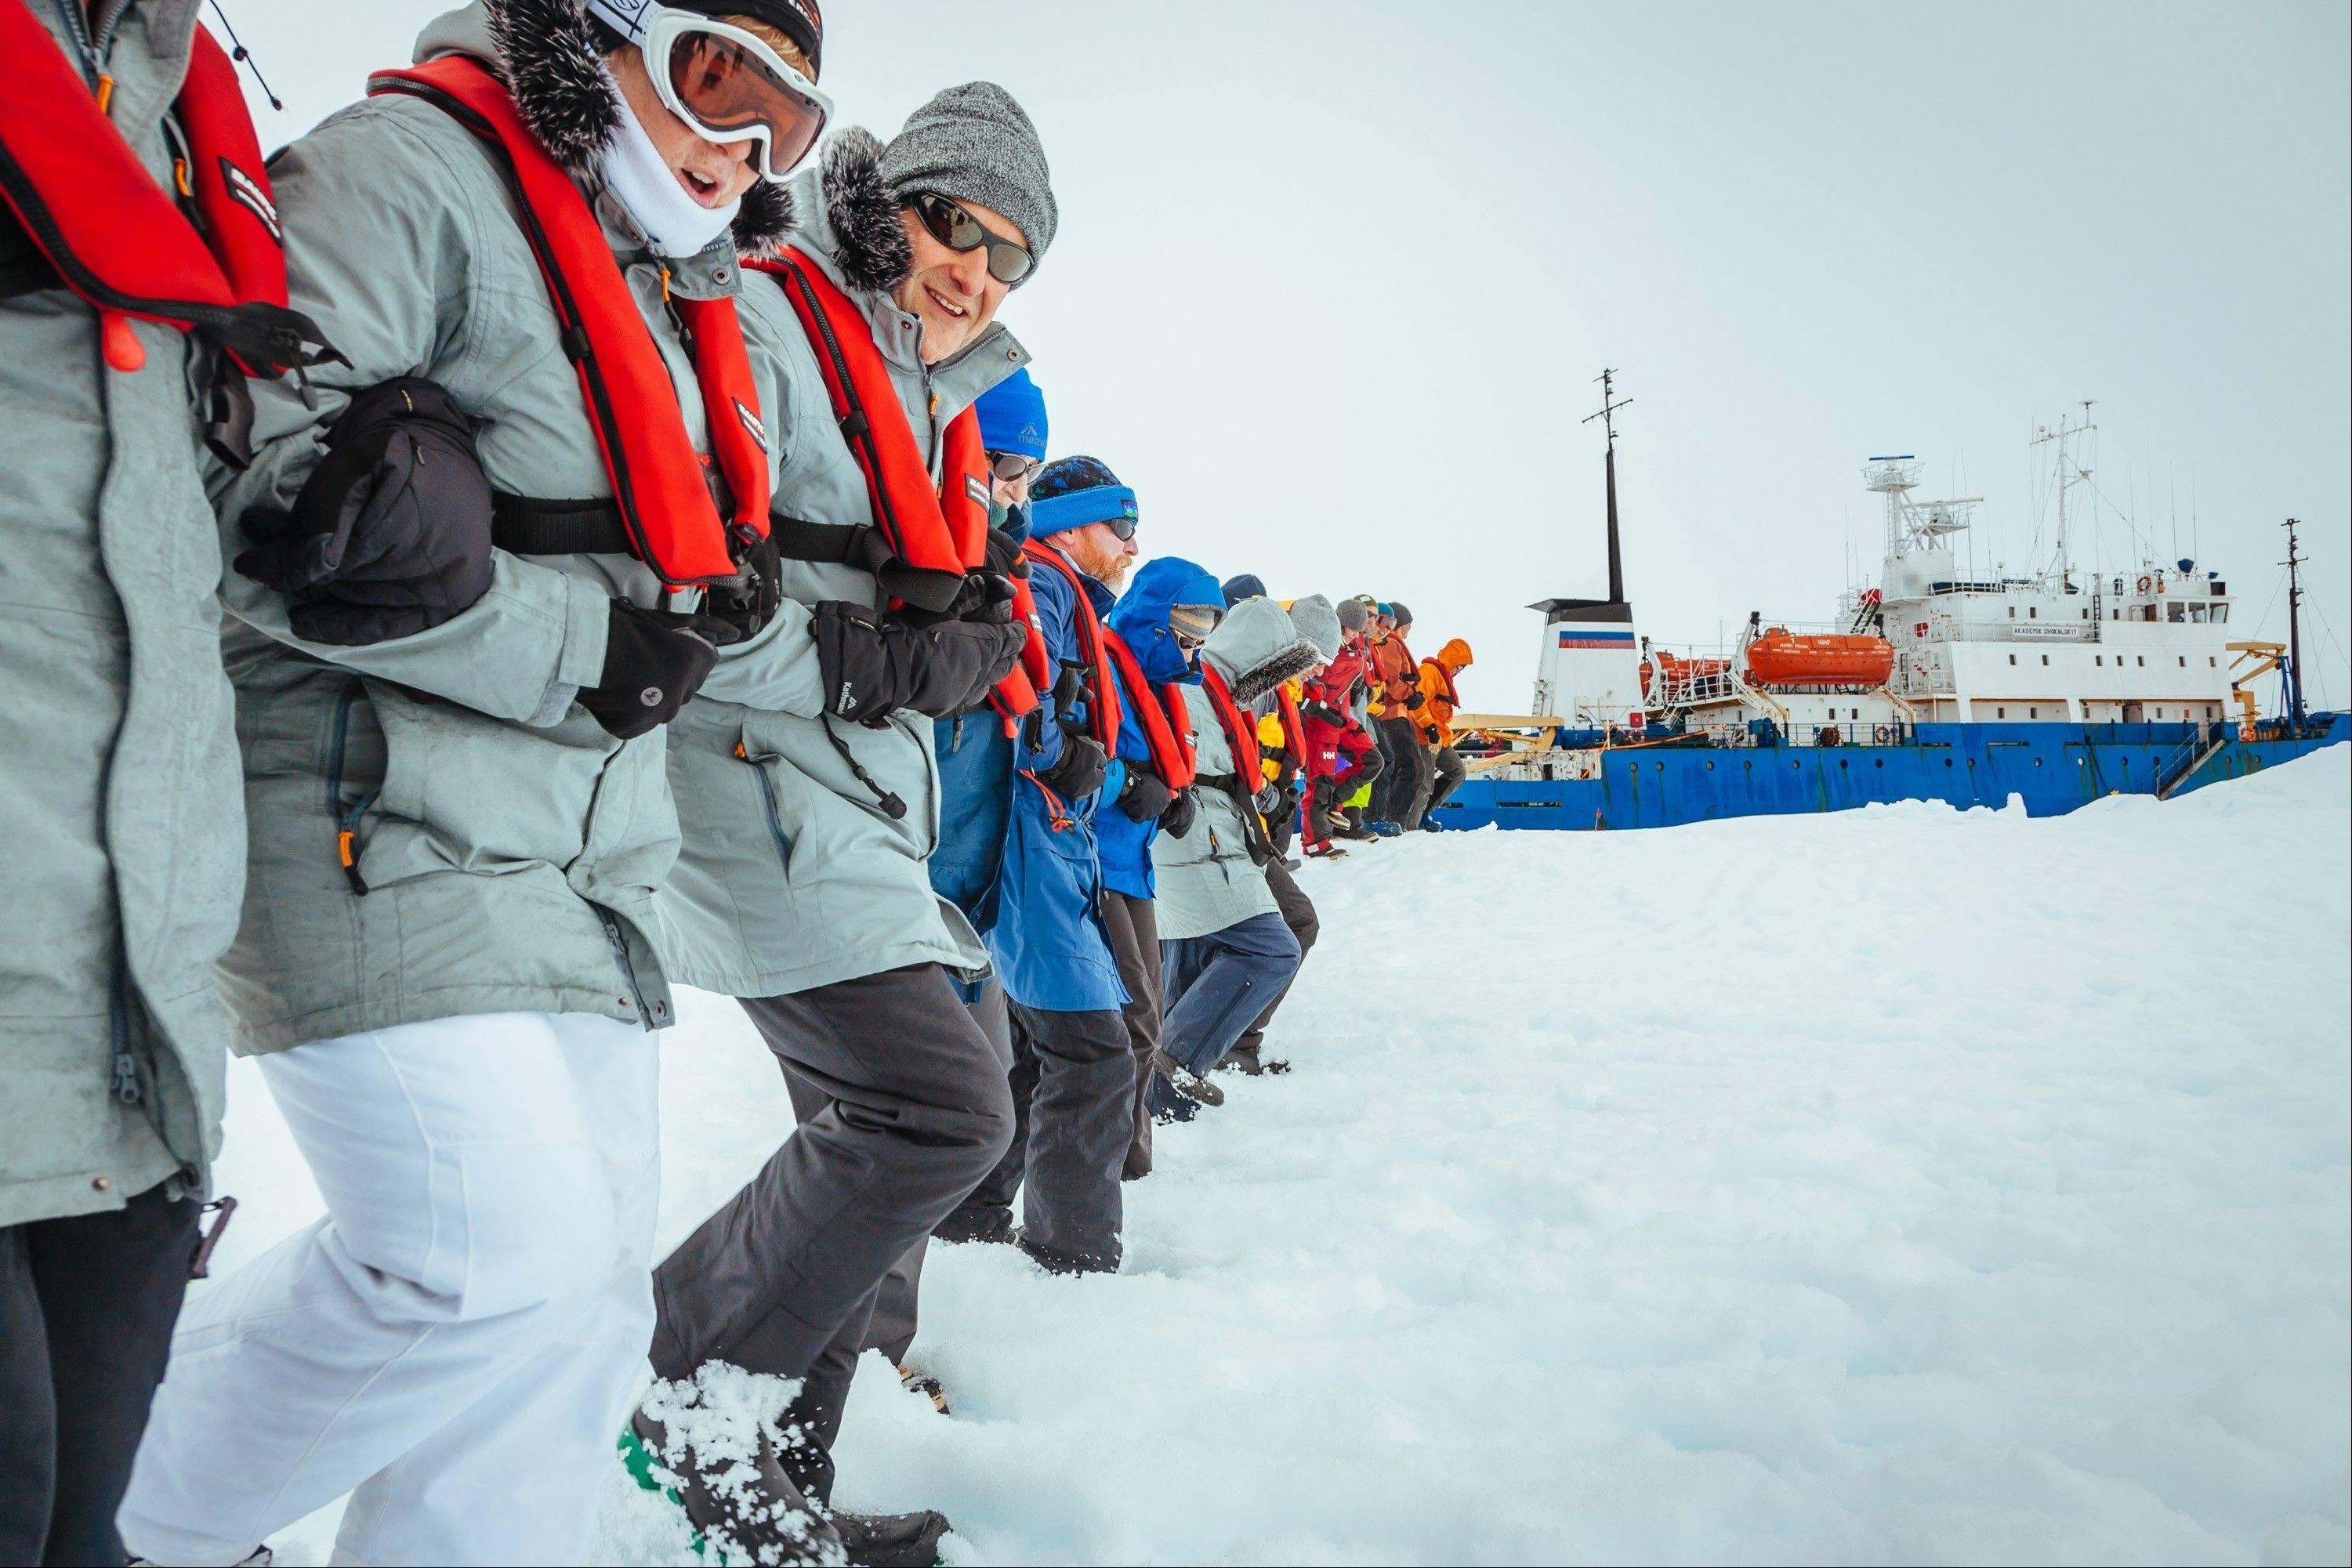 Passengers link arms and stamp out a helicopter landing site on the ice near the trapped ship in Antarctica on Tuesday.